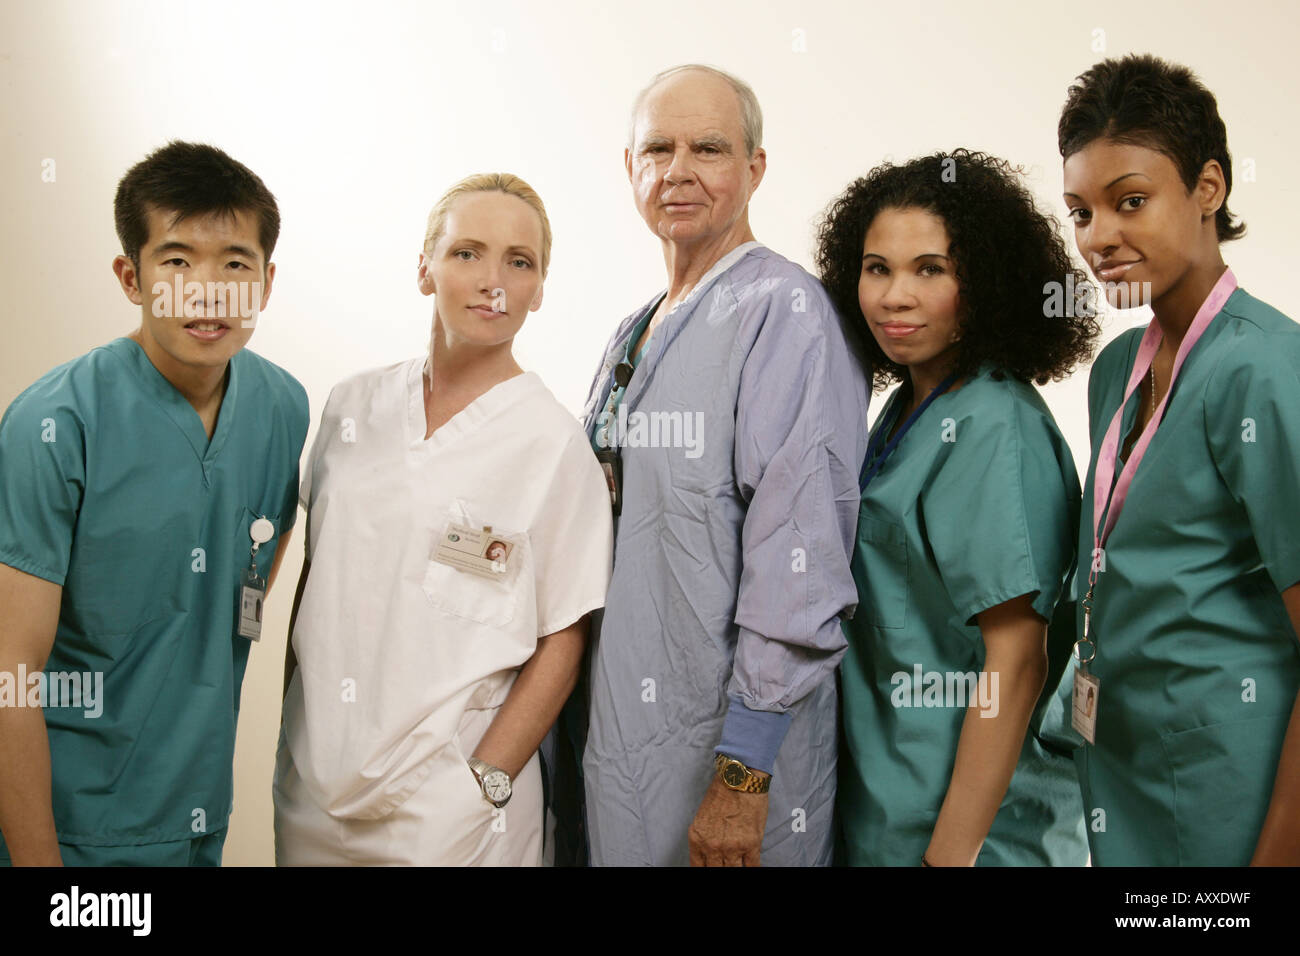 Mixed race group of medical personnel. - Stock Image